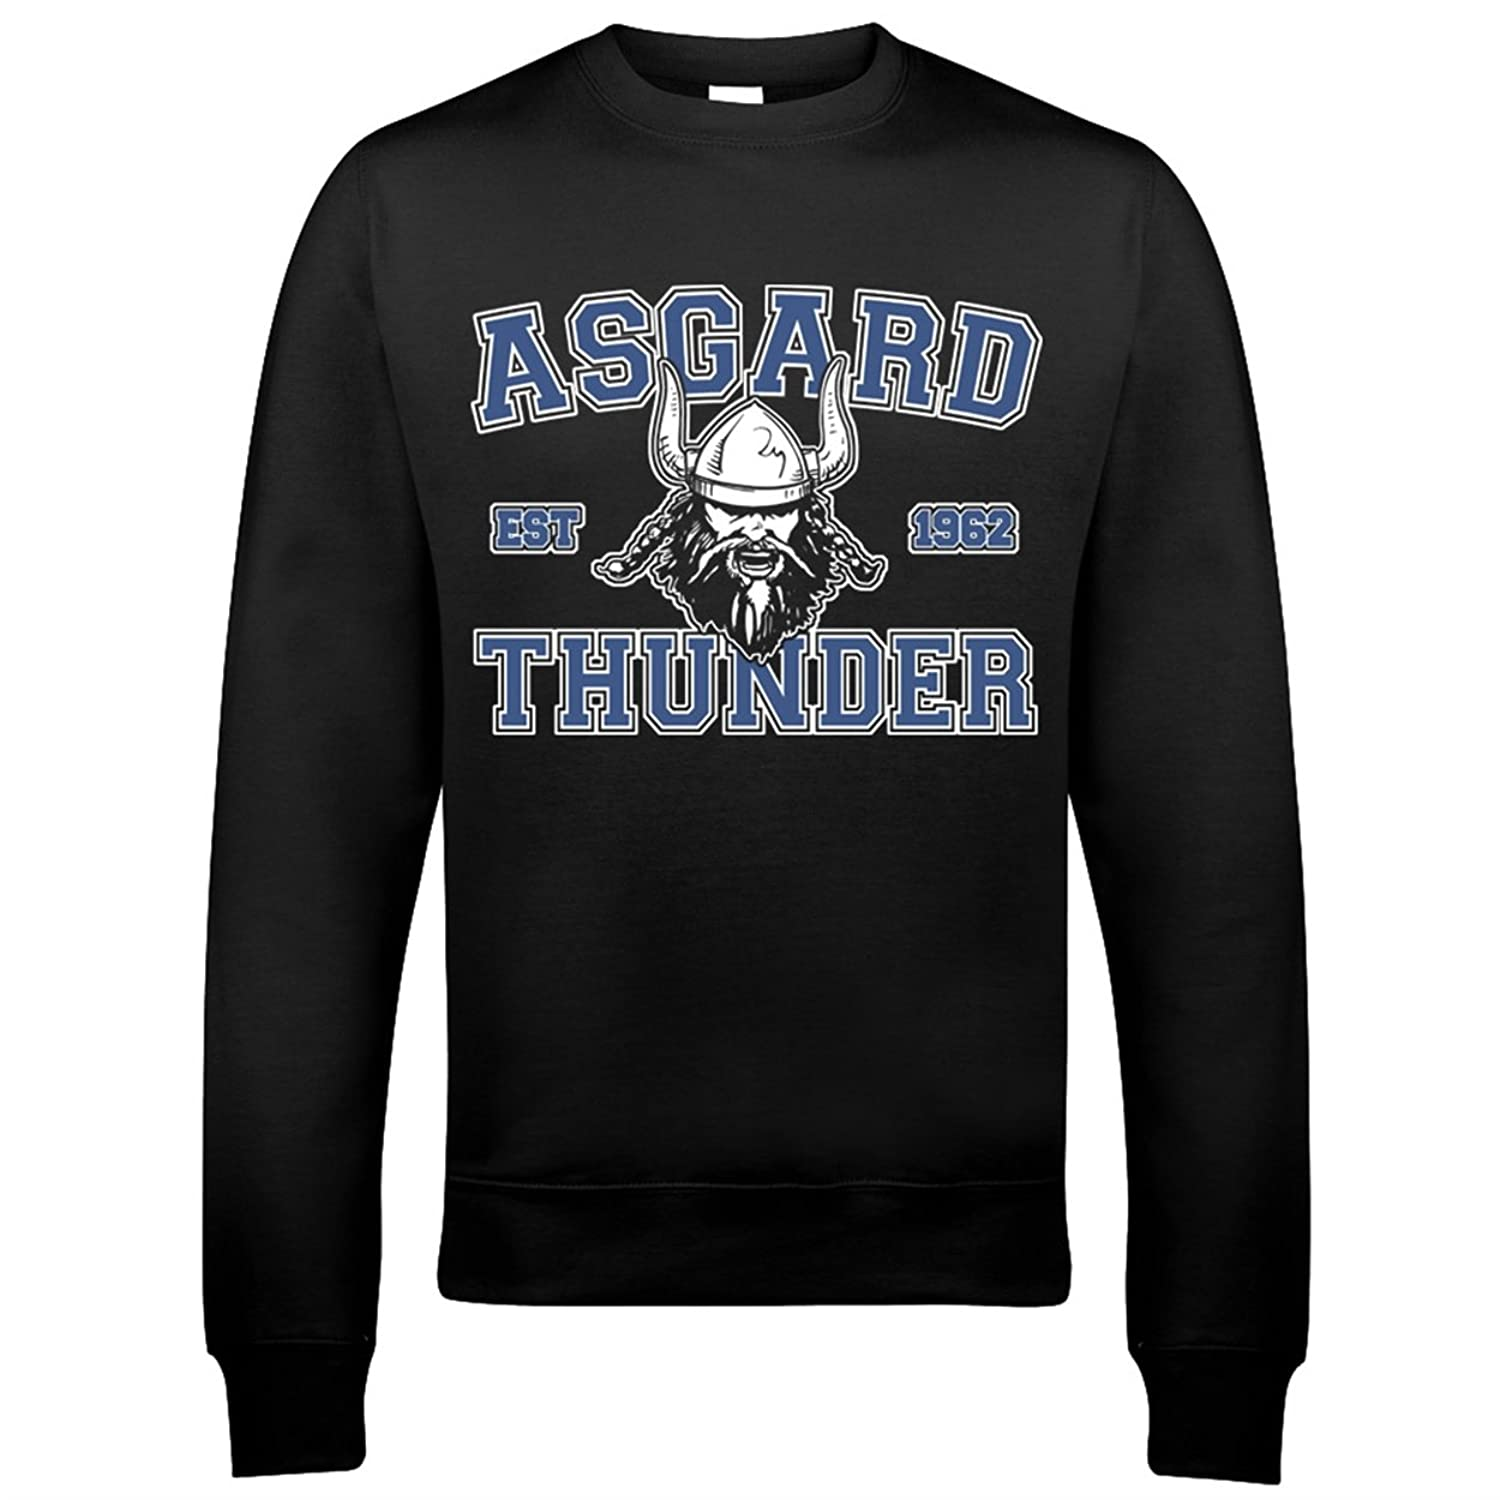 9071 Asgard Thunder Mens Sweatshirt Thor The Avengers Captain America Superman Green Lantern